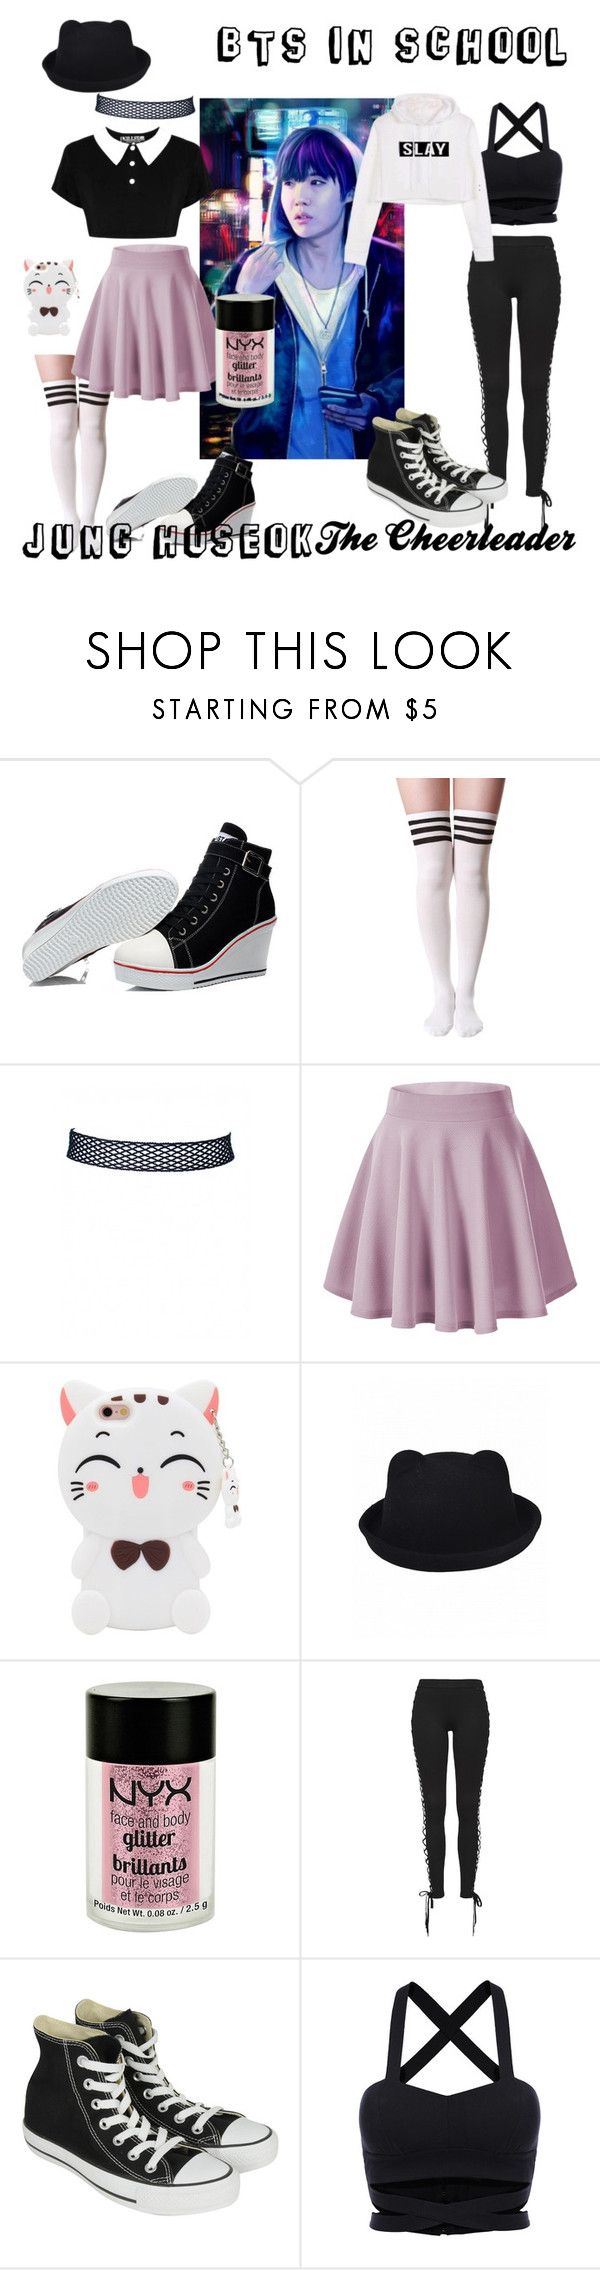 """""""BTS in School: Jung Hoseok- The Cheerleader"""" by jungkookielove ❤ liked on Polyvore featuring Killstar, Samsung, Charlotte Russe, Puma and Converse"""